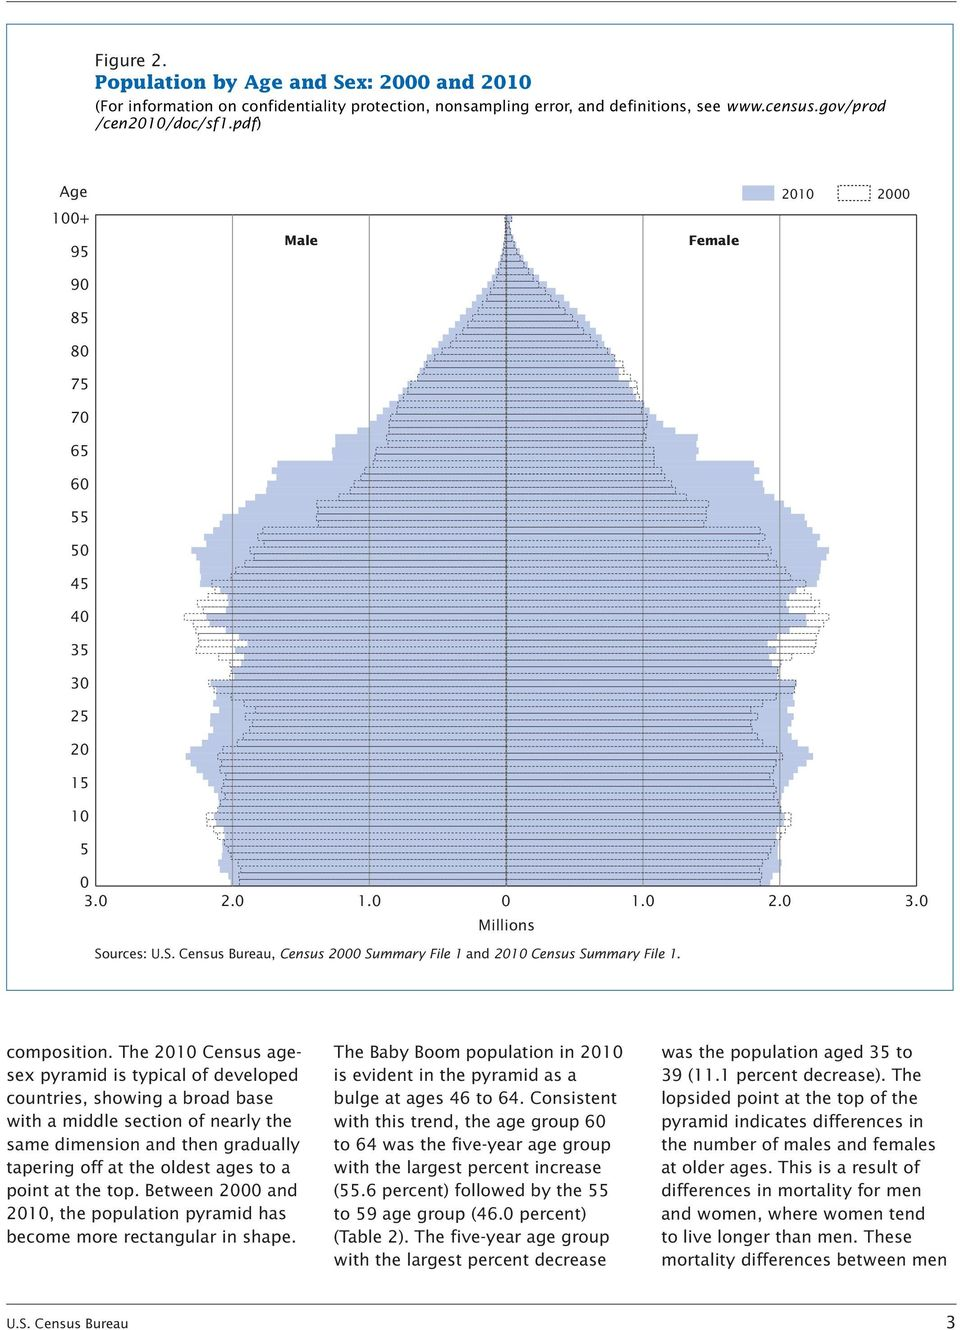 2010 Census agesex pyramid is typical of developed countries, showing a broad base with a middle section of nearly the same dimension and then gradually tapering off at the oldest ages to a point at